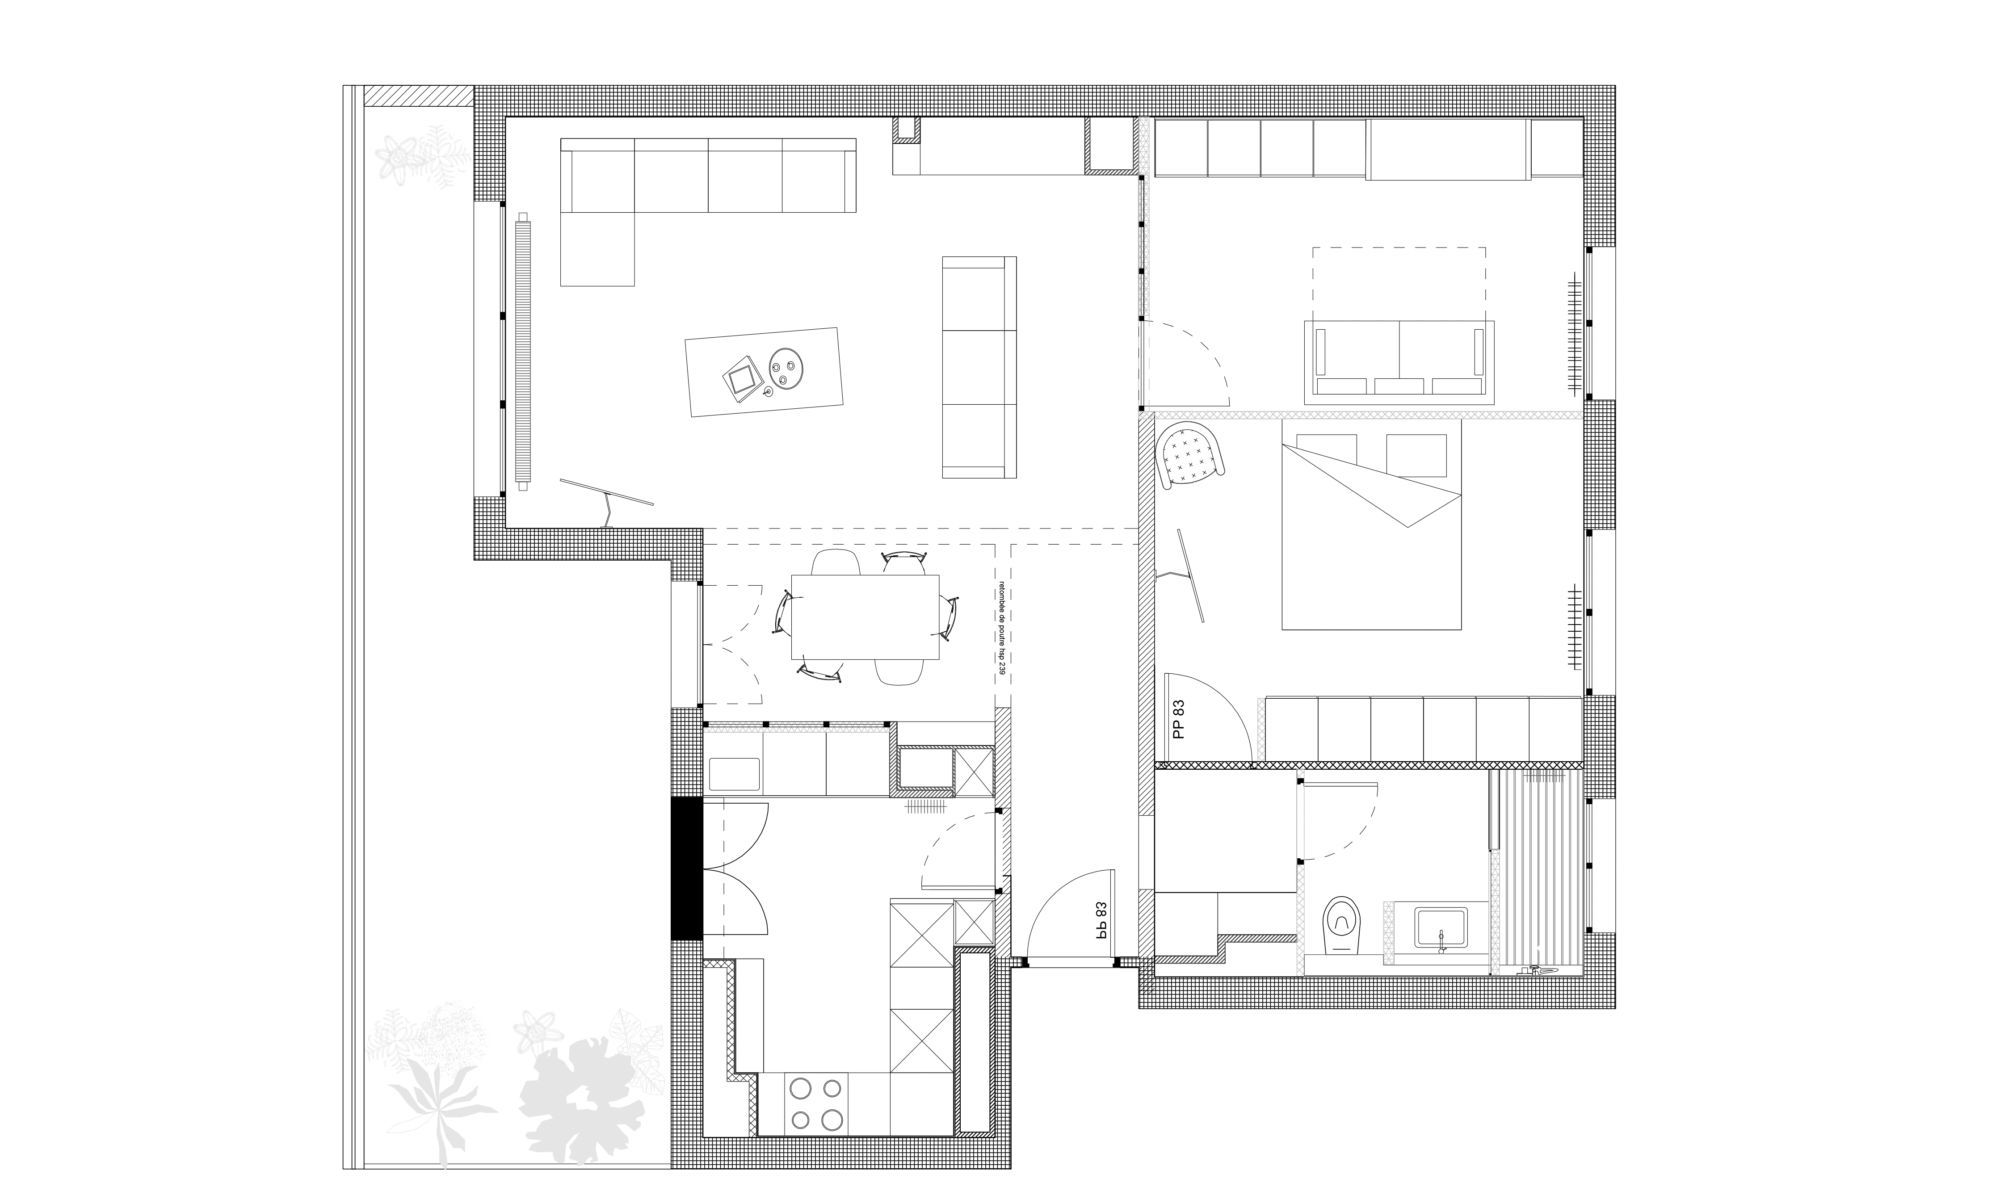 Plan de la restructuration de l'appartement